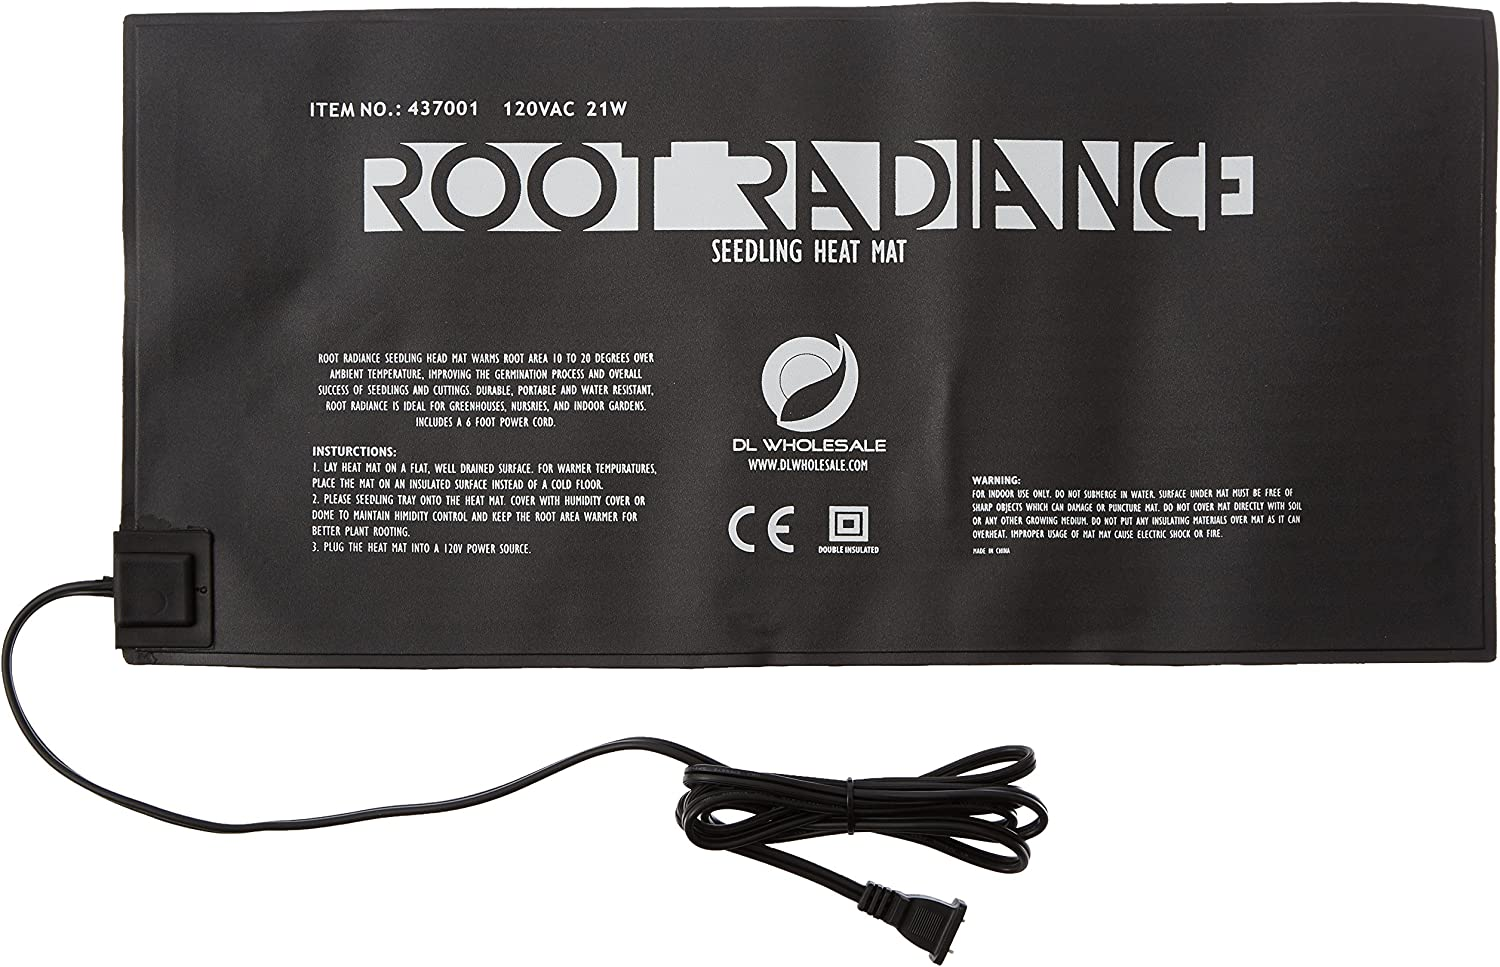 Root Radiance Warm Hydroponic Heating Pad, 20.75 by 10-Inch